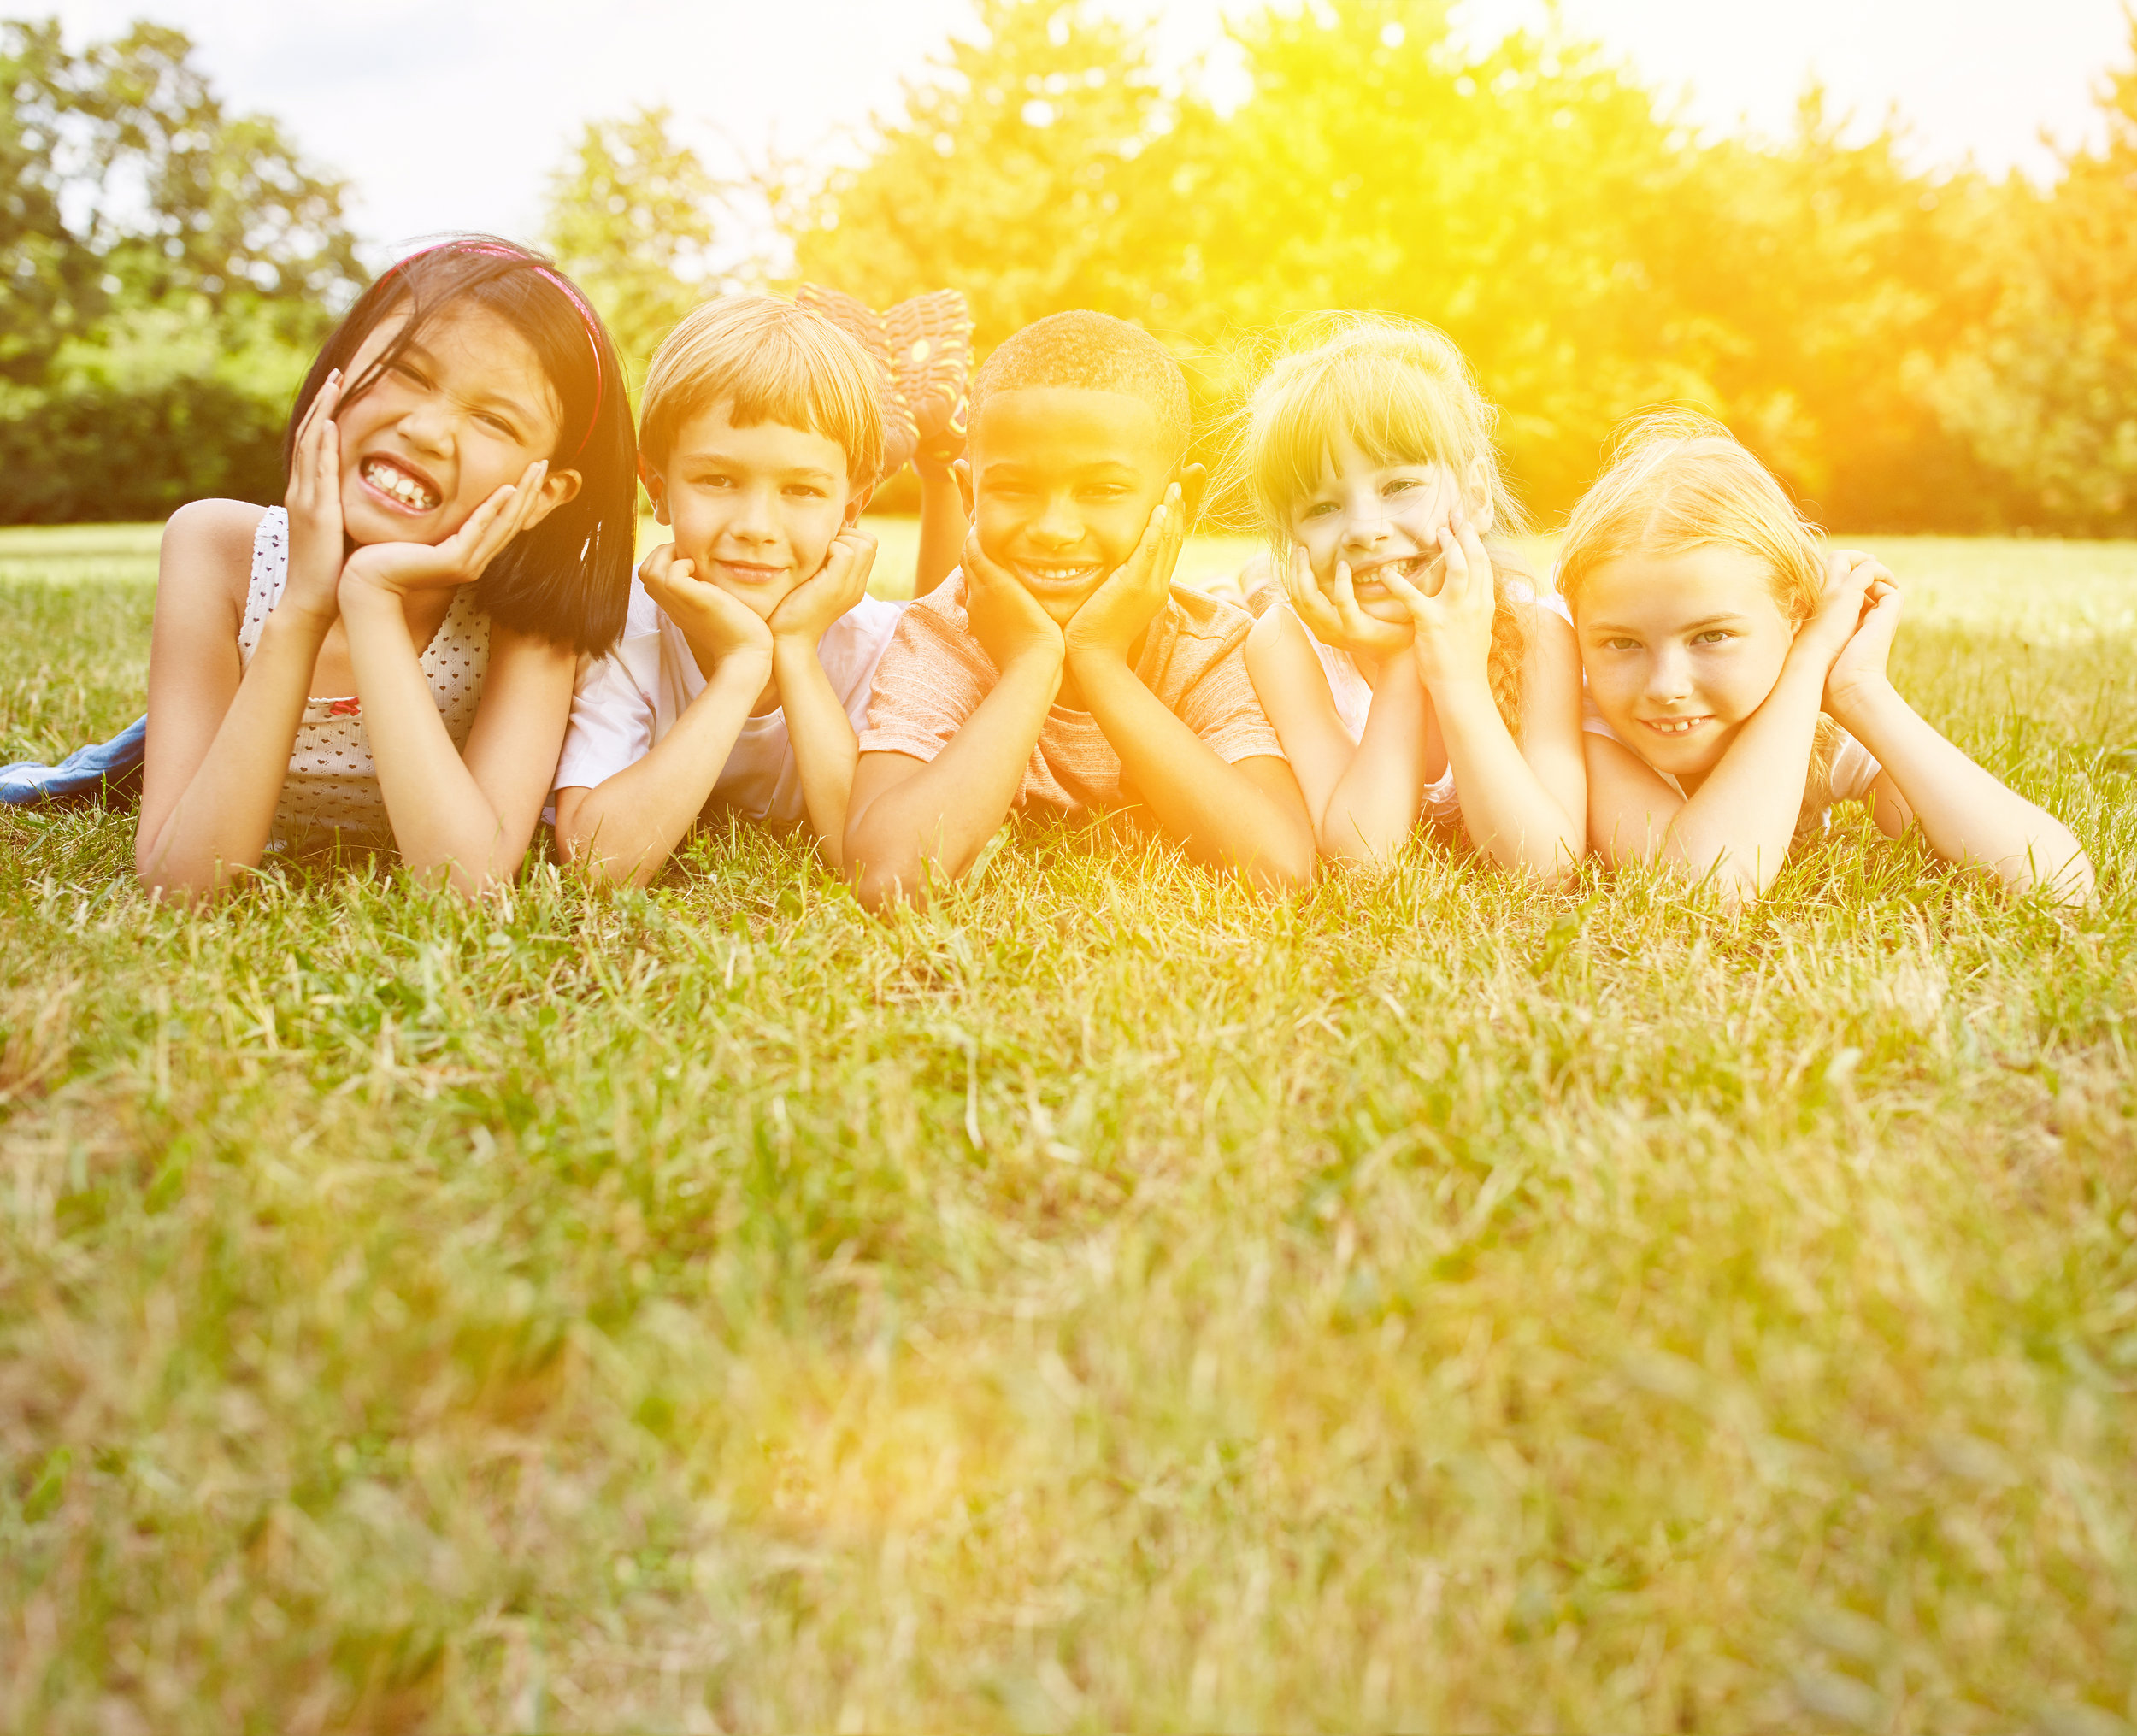 Happy kids grass sunshine.jpg